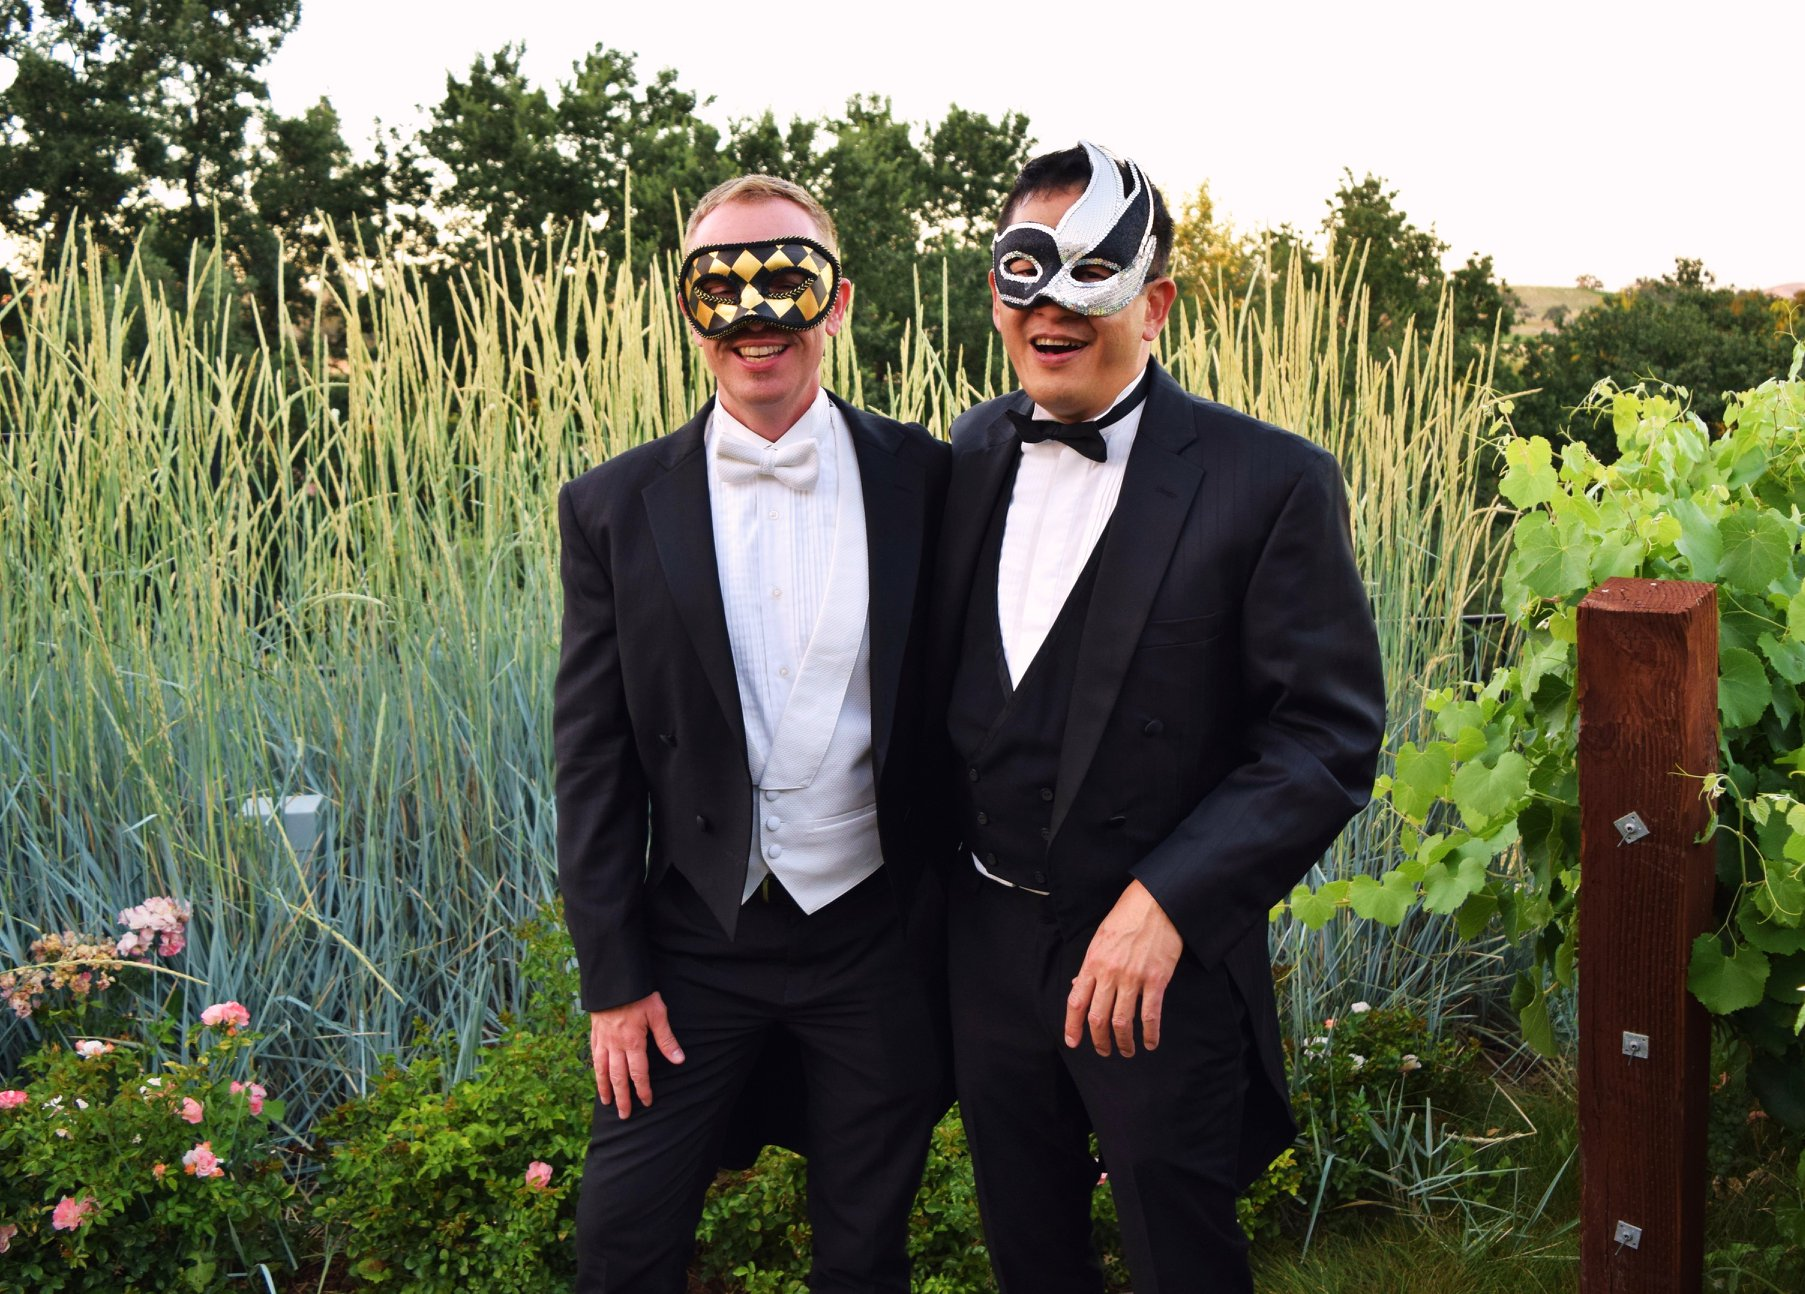 Masquerade Ball - Chris Greene